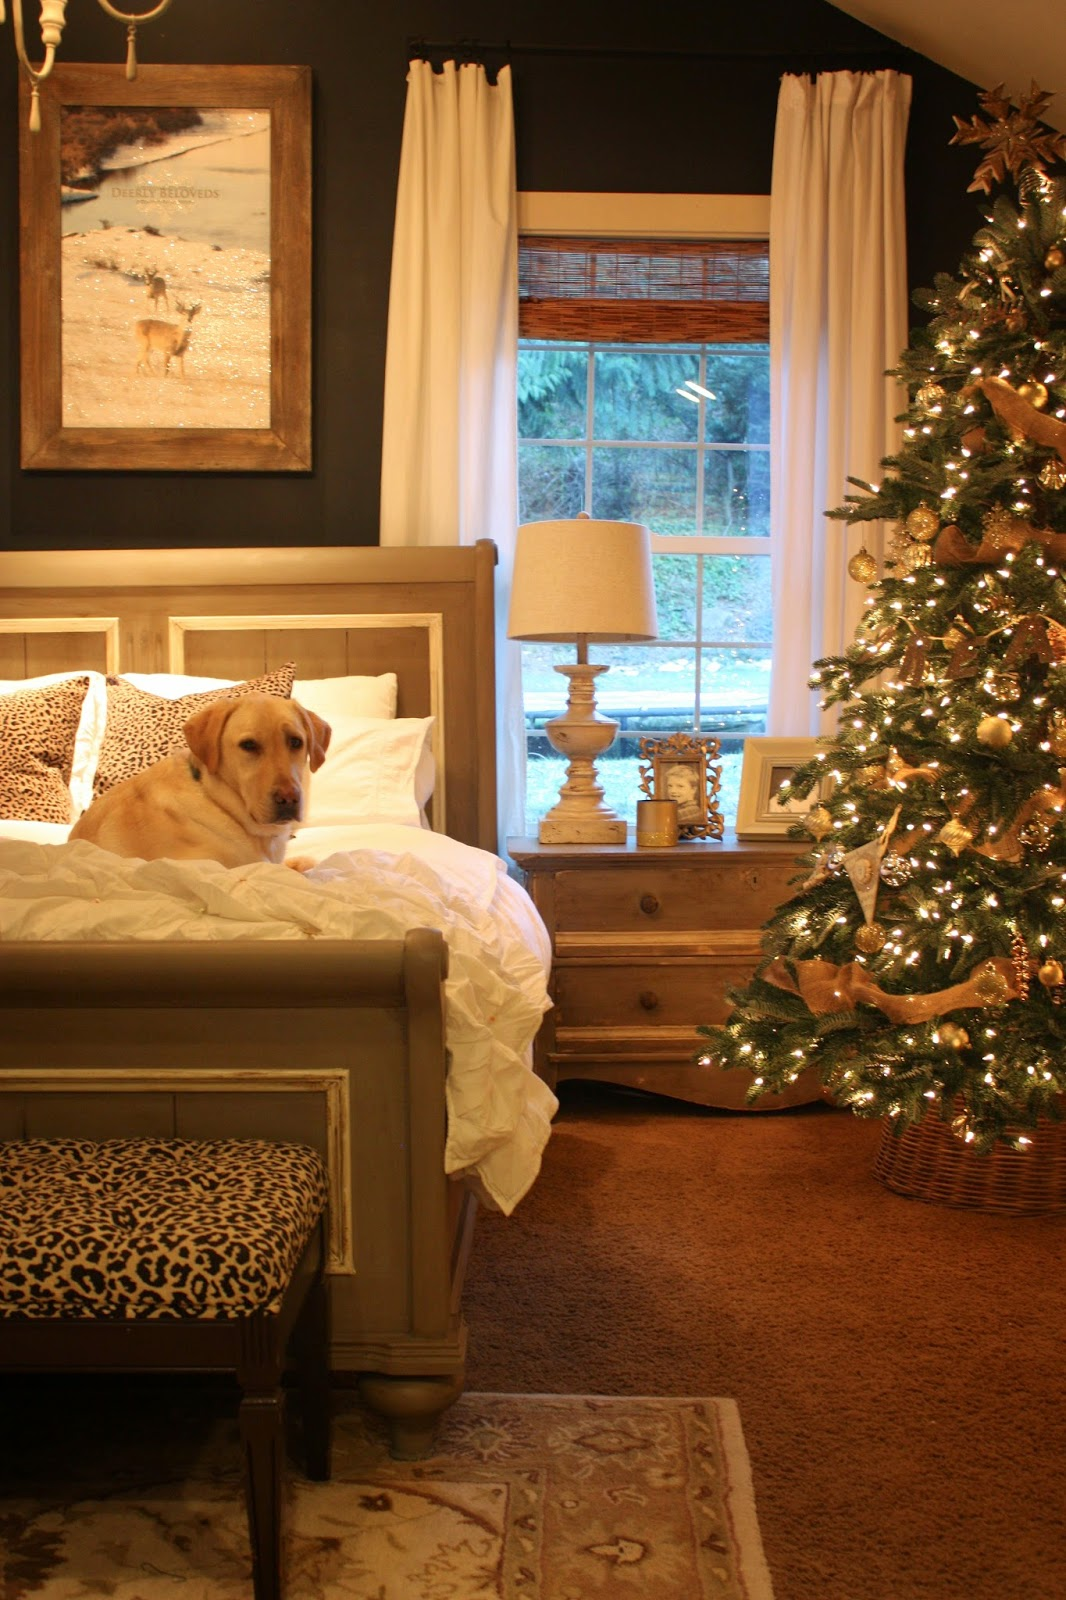 My sweet savannah holiday home tour 2014 - Best christmas bedroom decoration ...